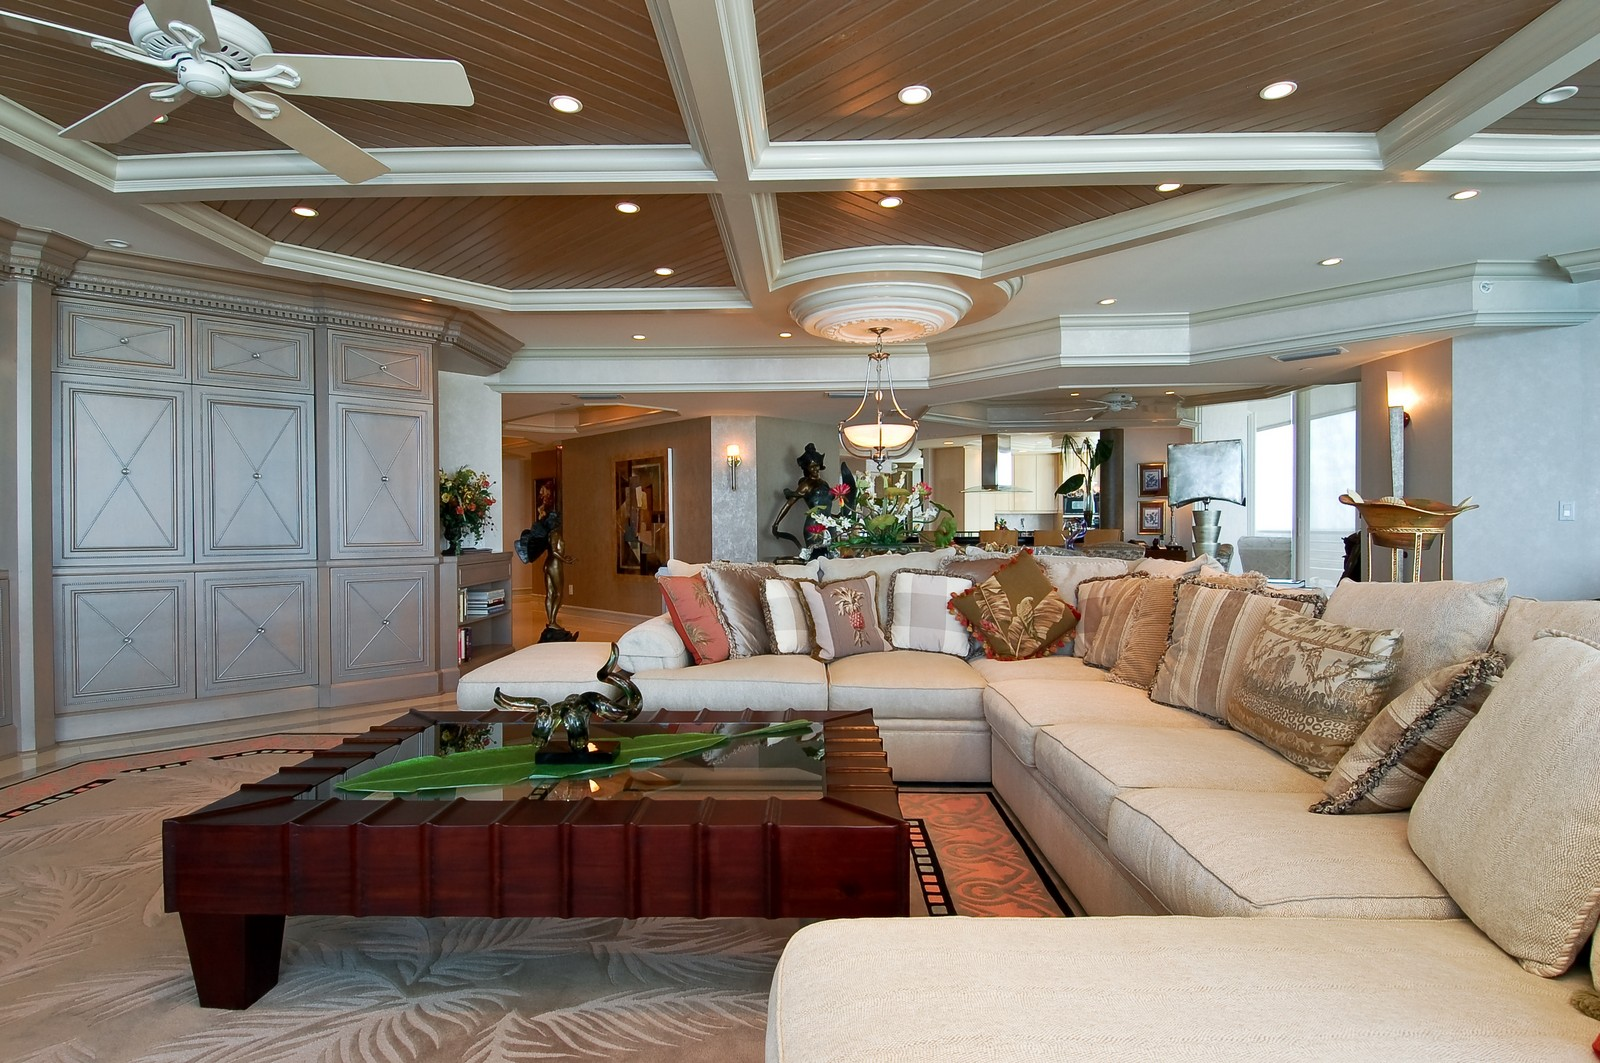 Real Estate Photography - 1700 S Ocean Blvd, 22C, Lauderdale by the Sea, FL, 33062 - Living Room